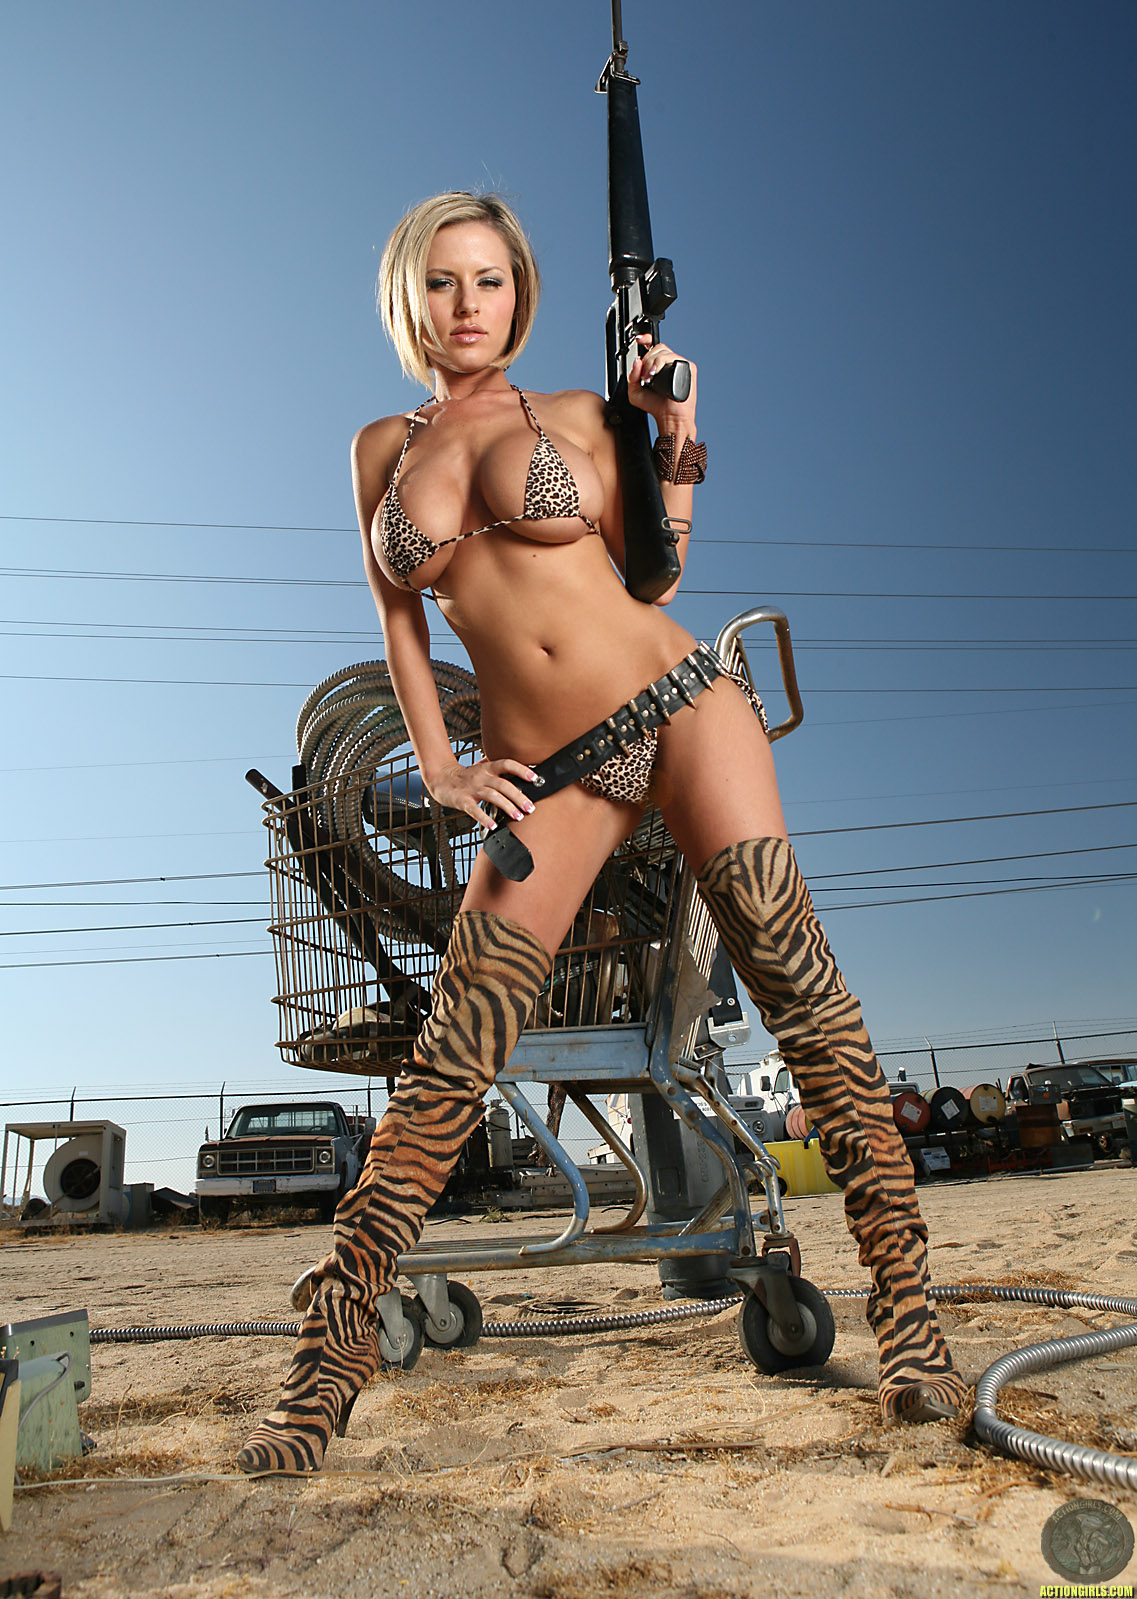 Xxx guns with girl hd wallpaper nsfw online actresses